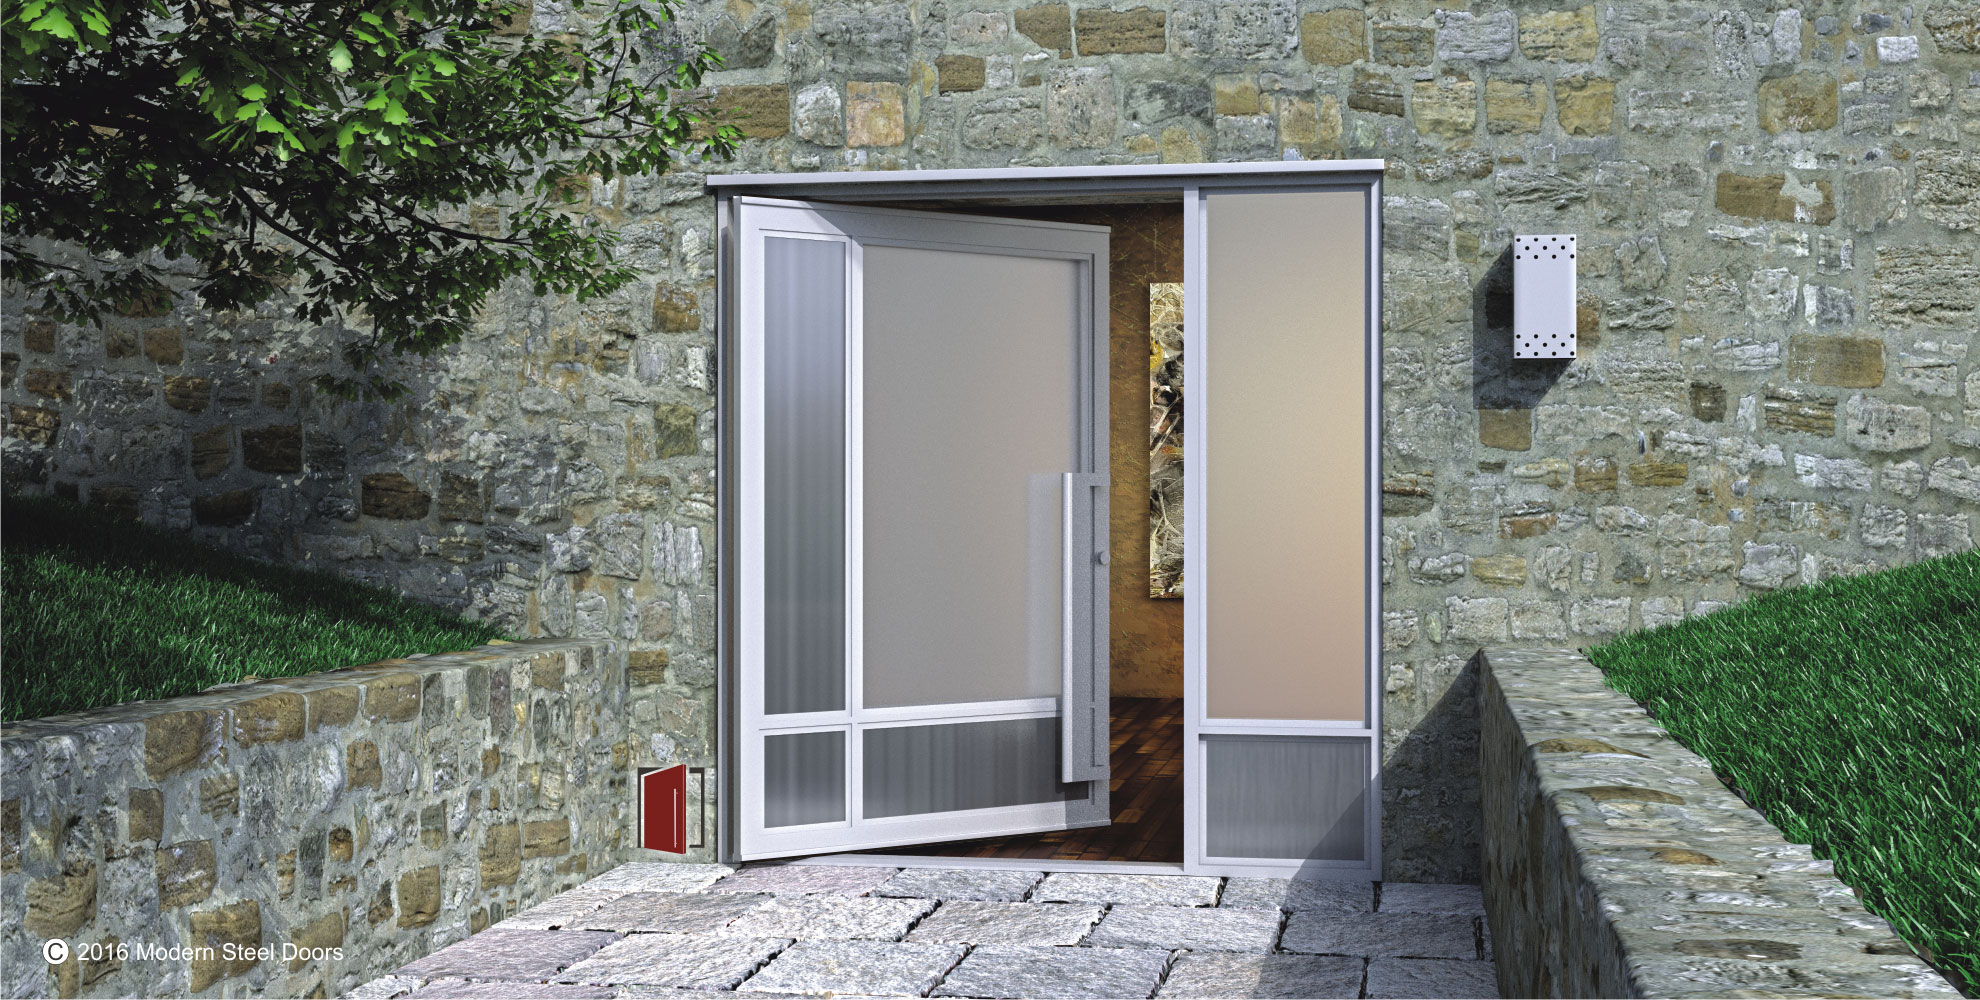 tall pivot front door design made of frosted glass with matching door handles and sidelight